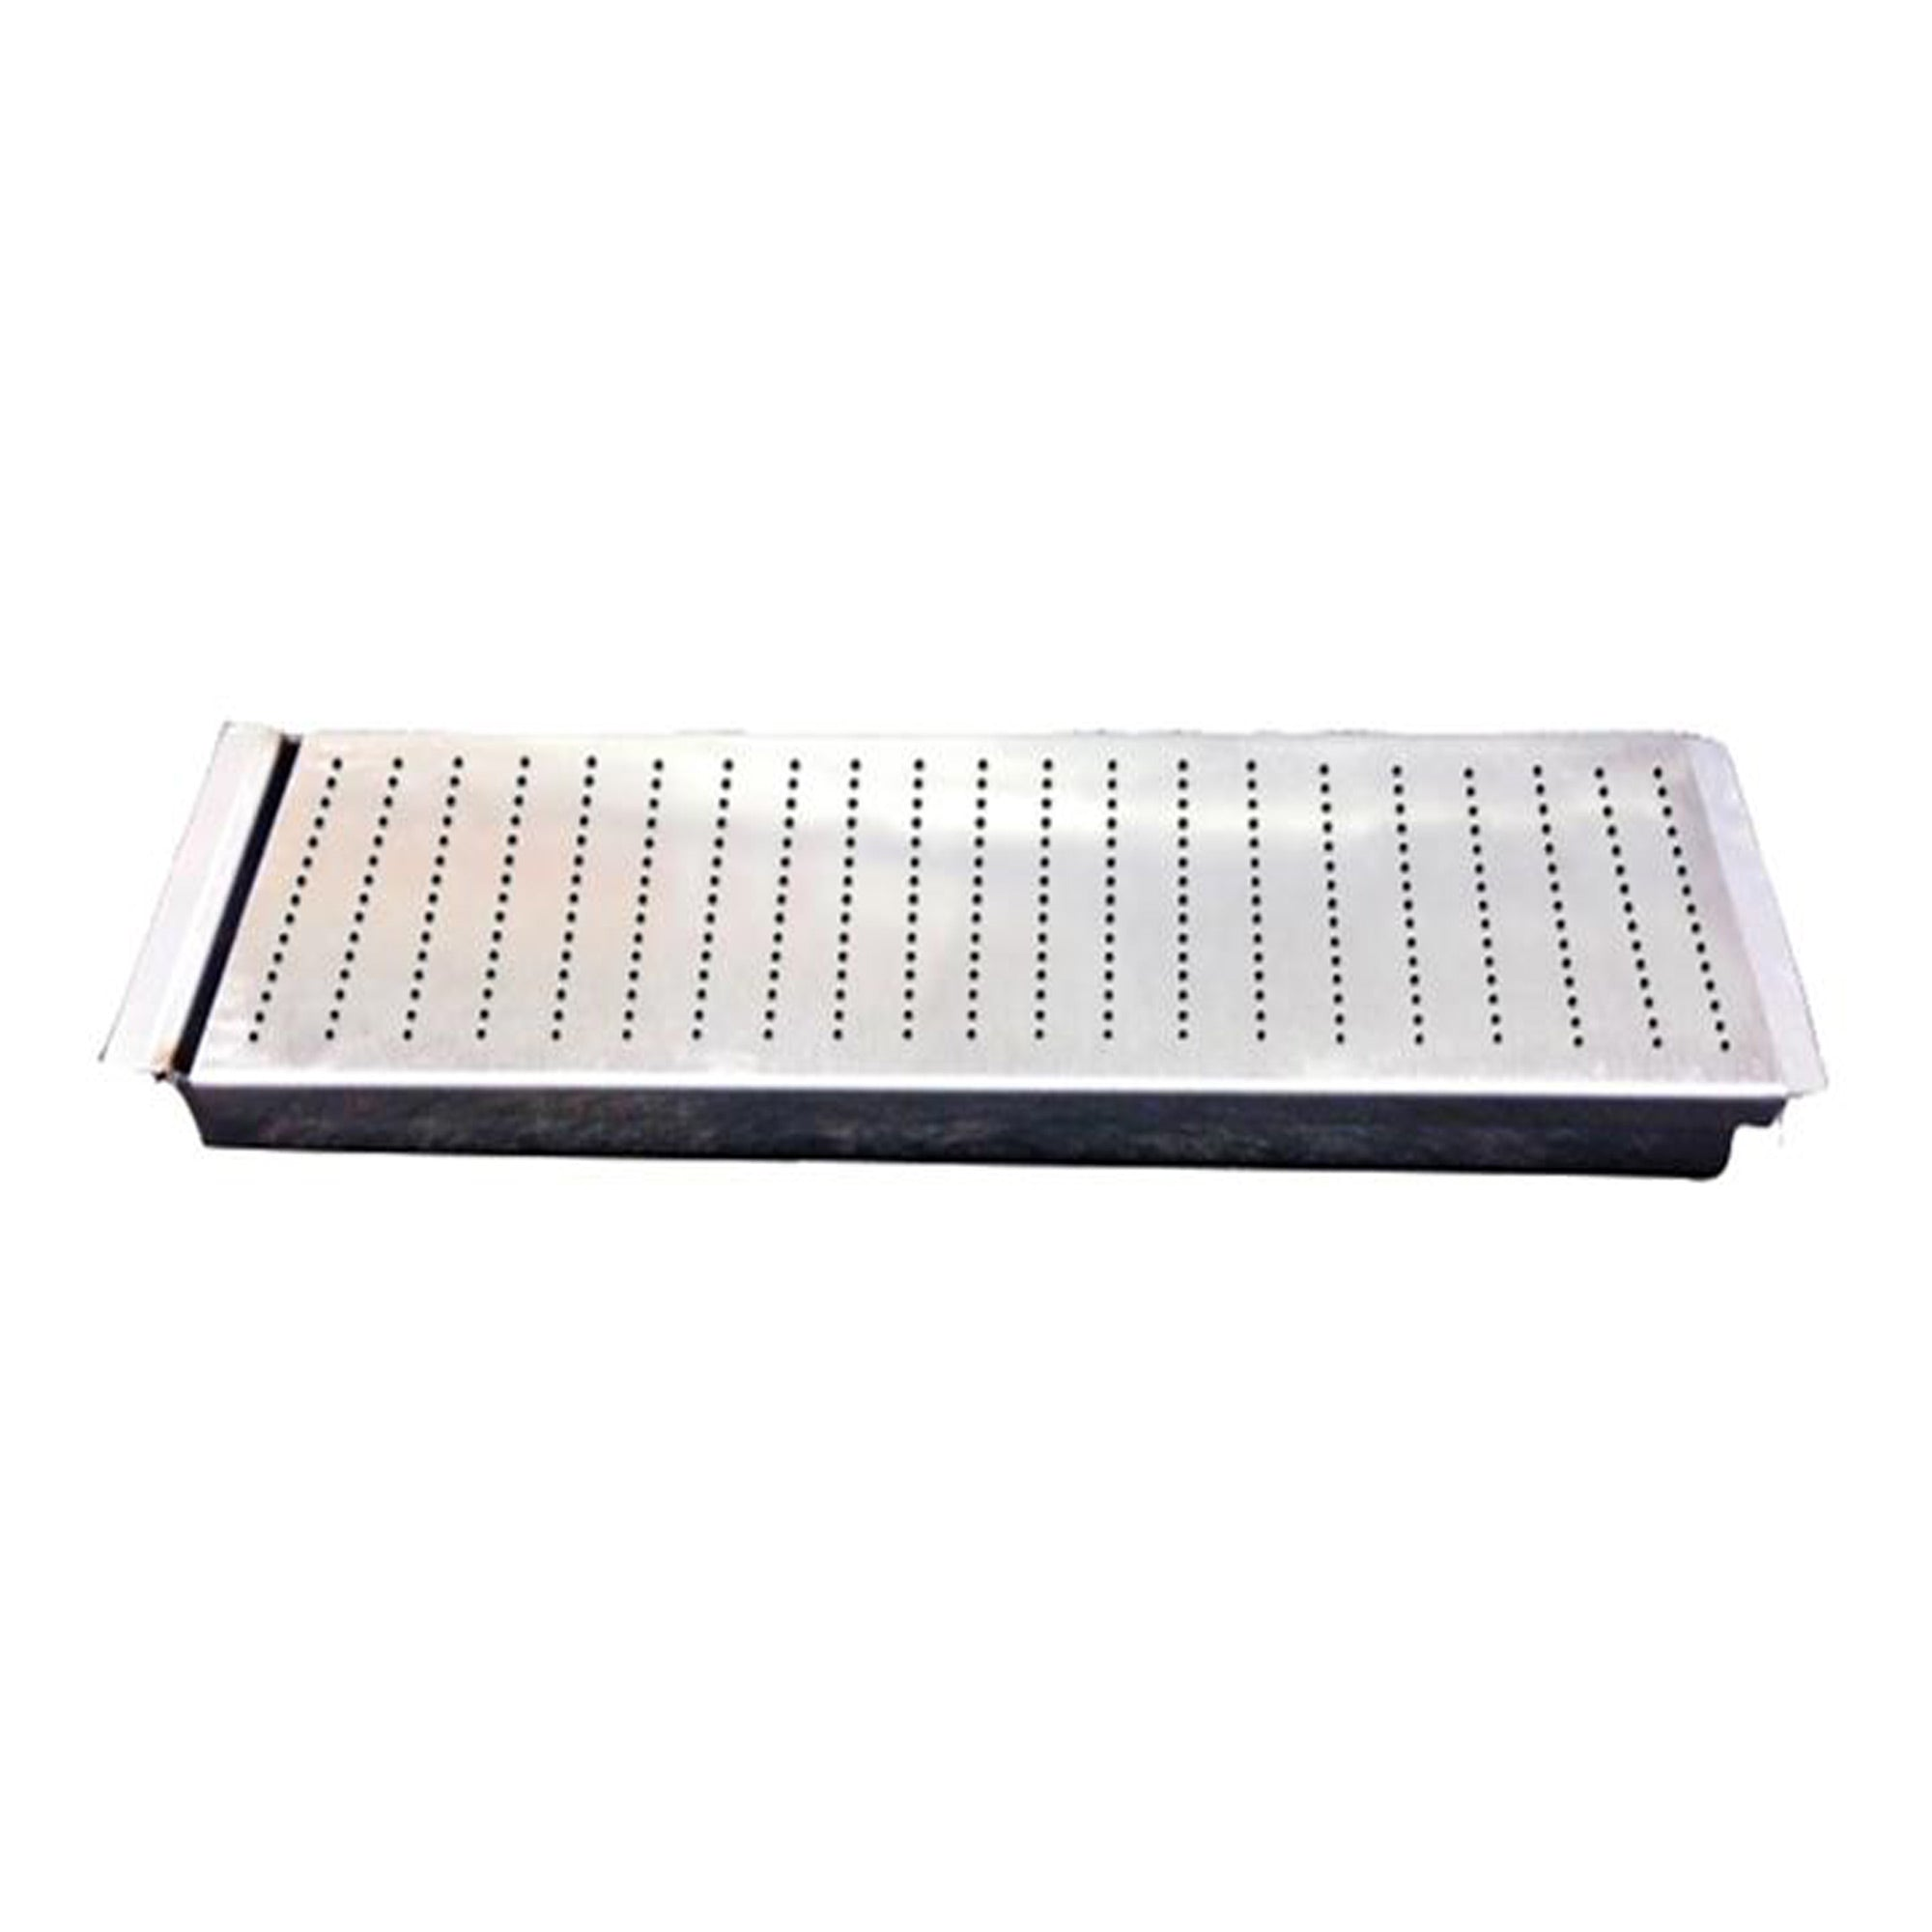 Summerset Pro Series Smoker Tray